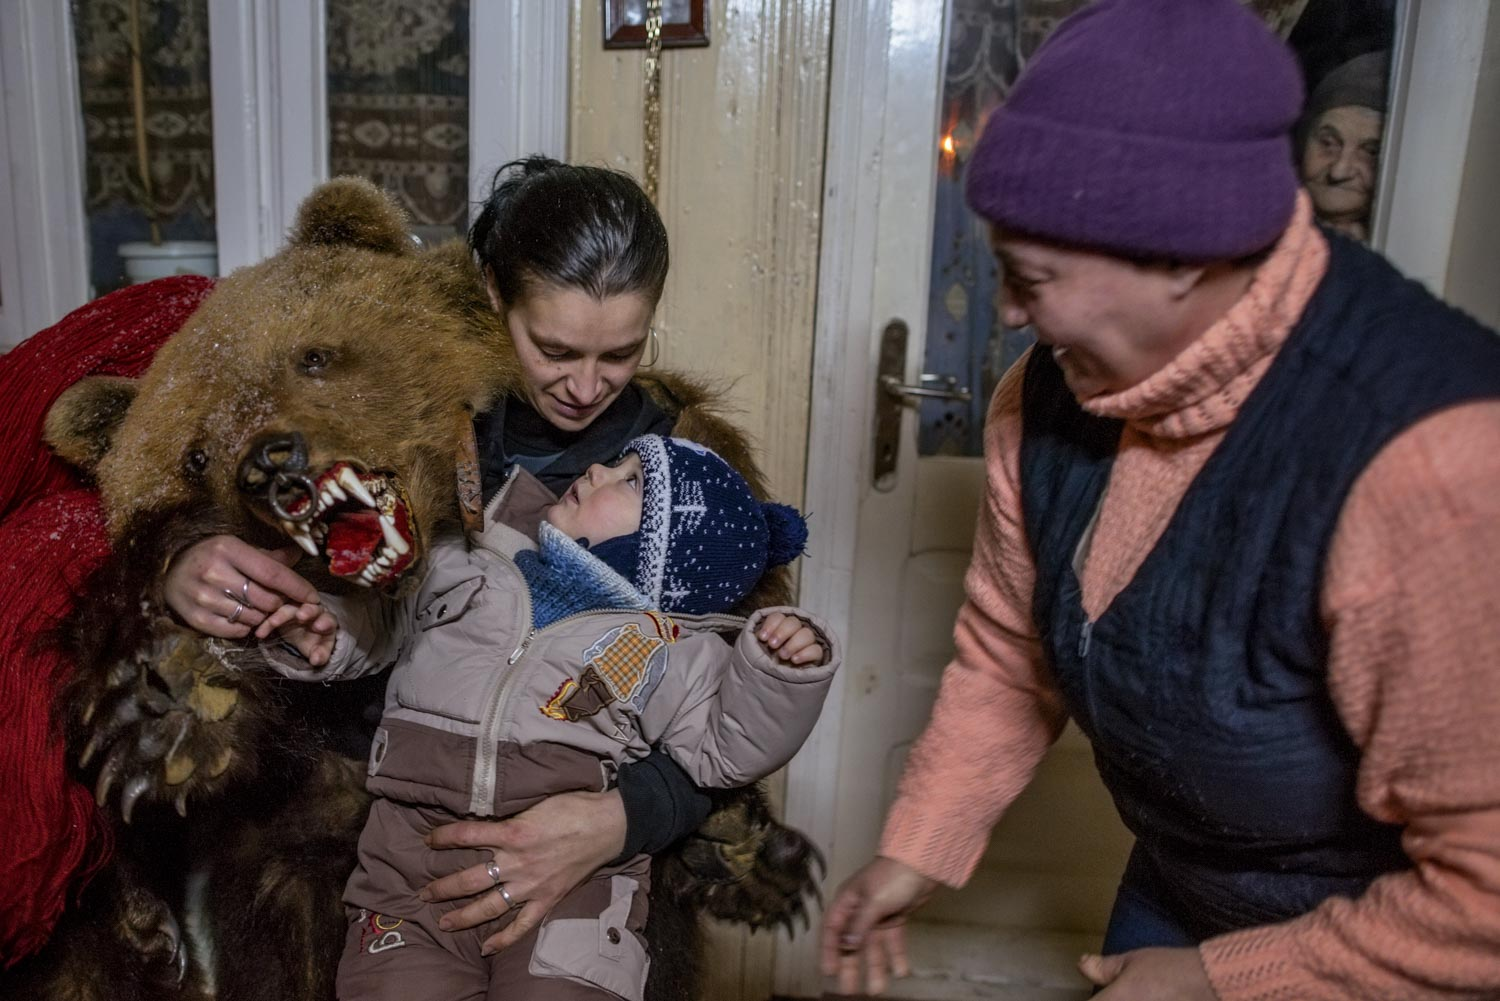 A lady bear in Toloaca's troupe plays with the young son of Cătălin Apetroaie, a bear dancer himself, after a performance at Apetroaie's home. The child's grandmother scurries by while his great-grandmother peers from inside the house.  December 28, 2014. Laloaia village, Bacău county, Romania.